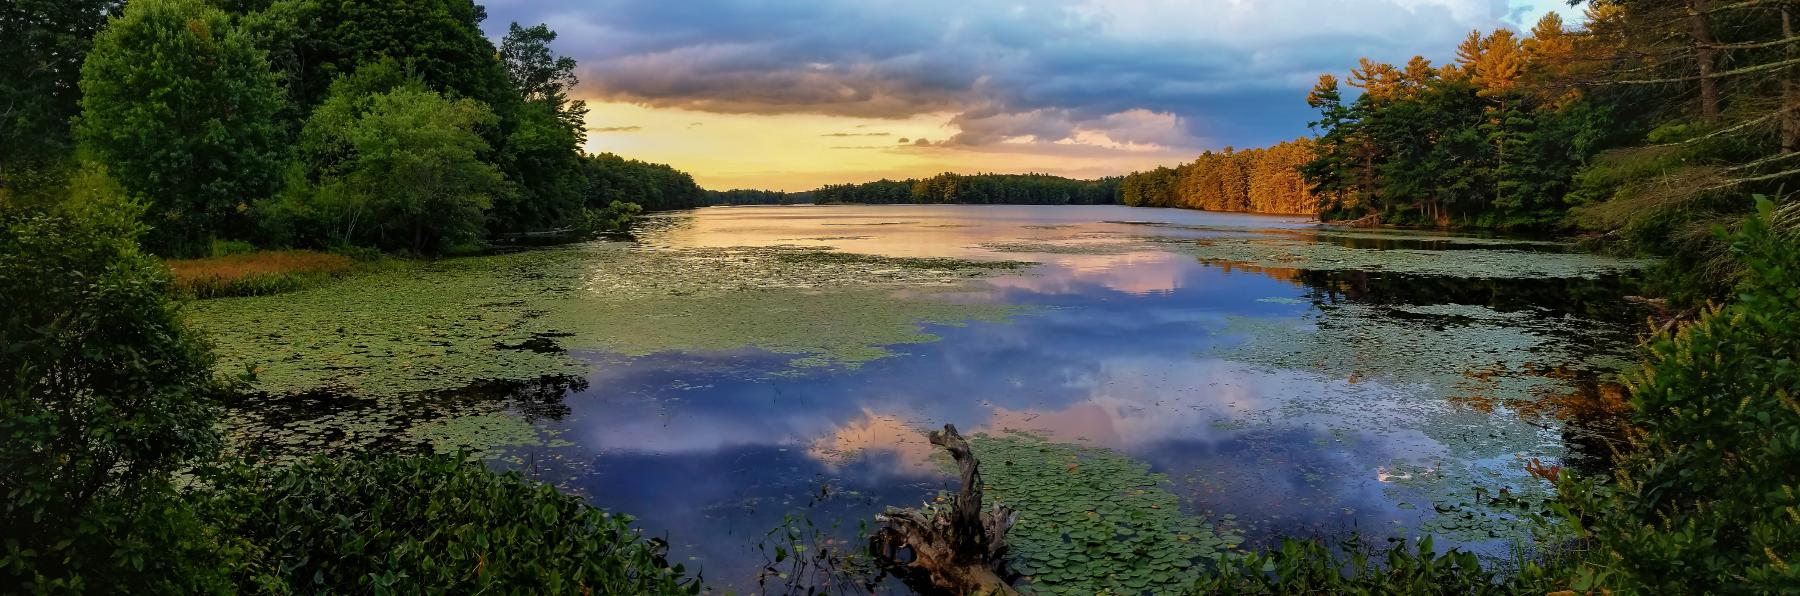 Whitehall State Park perfect for outdoor recreation